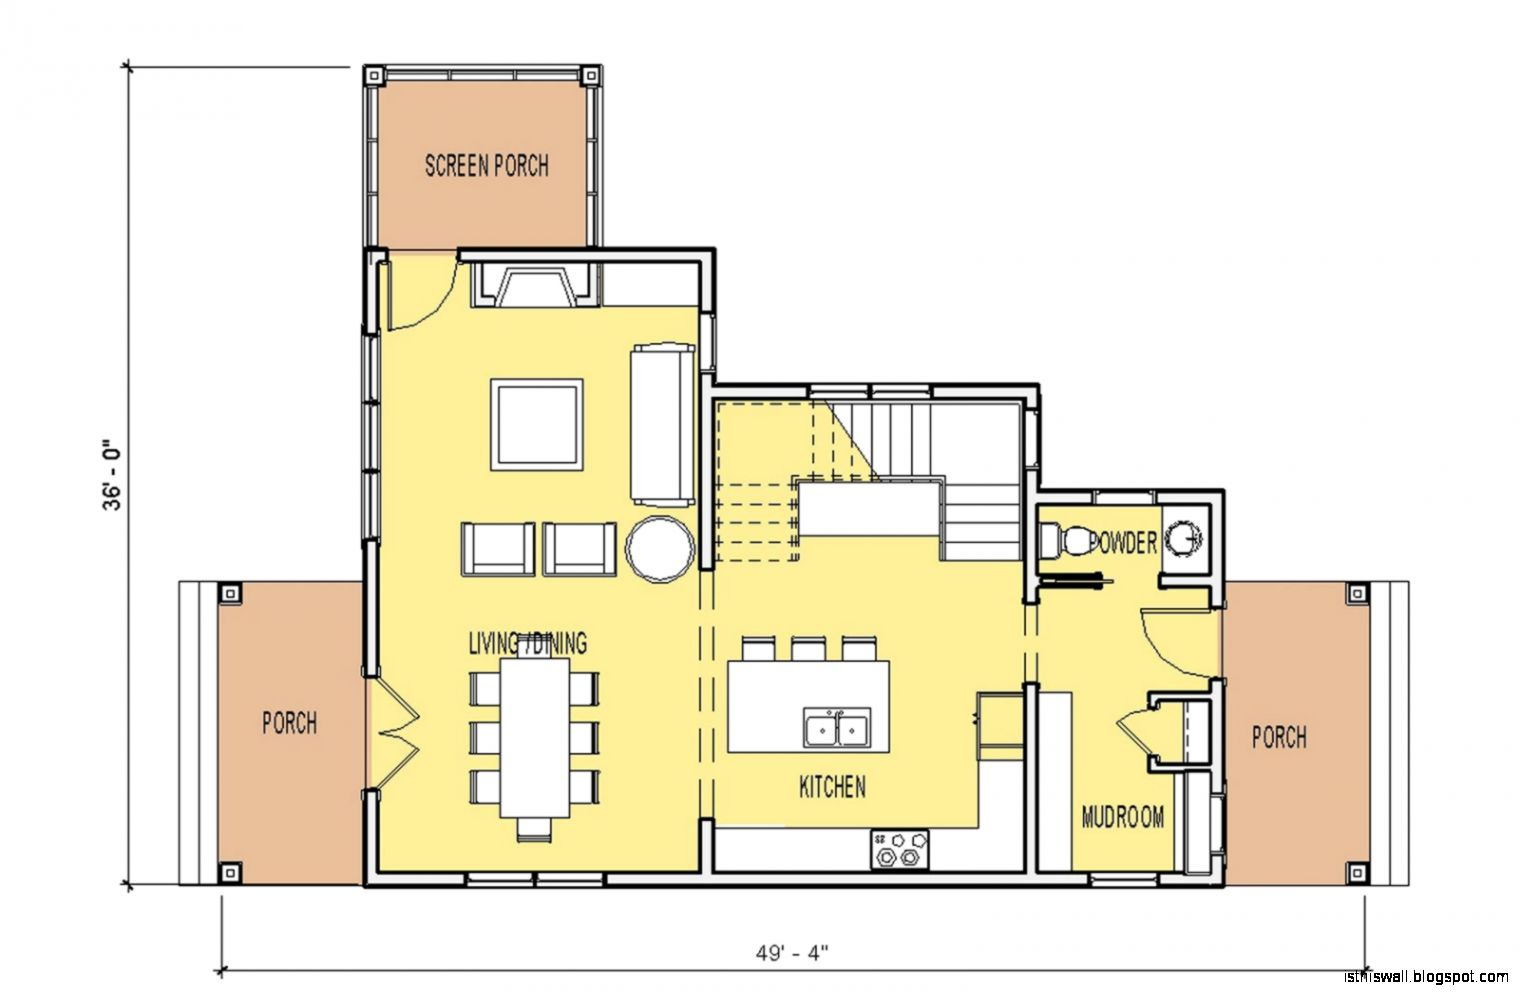 Unique house plans plan 034h 0121 find unique house for Create your house plan